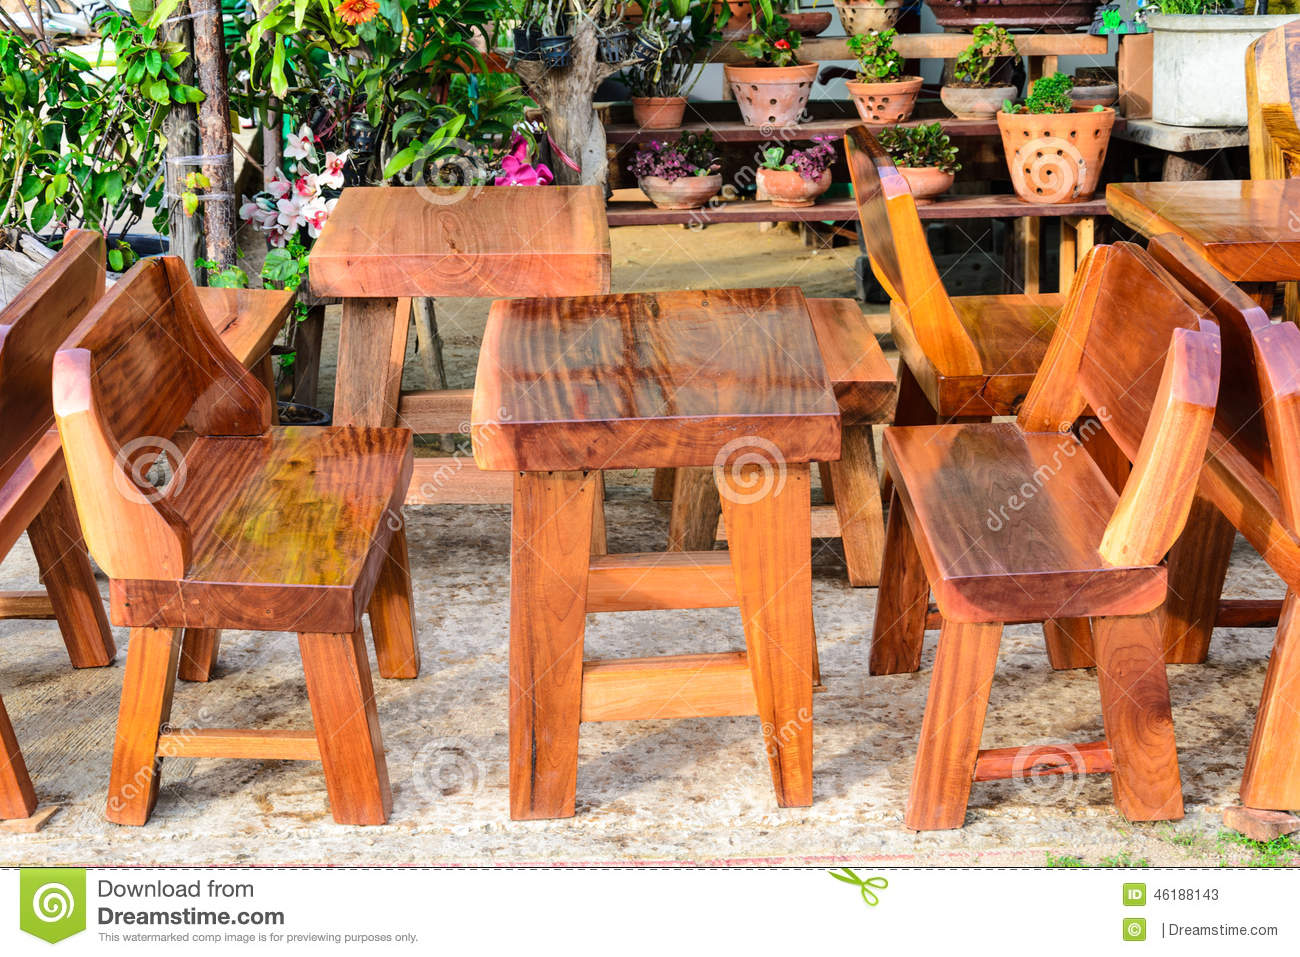 Furniture Market Wood Furniture In Market Fair Stock Image Image Of Living